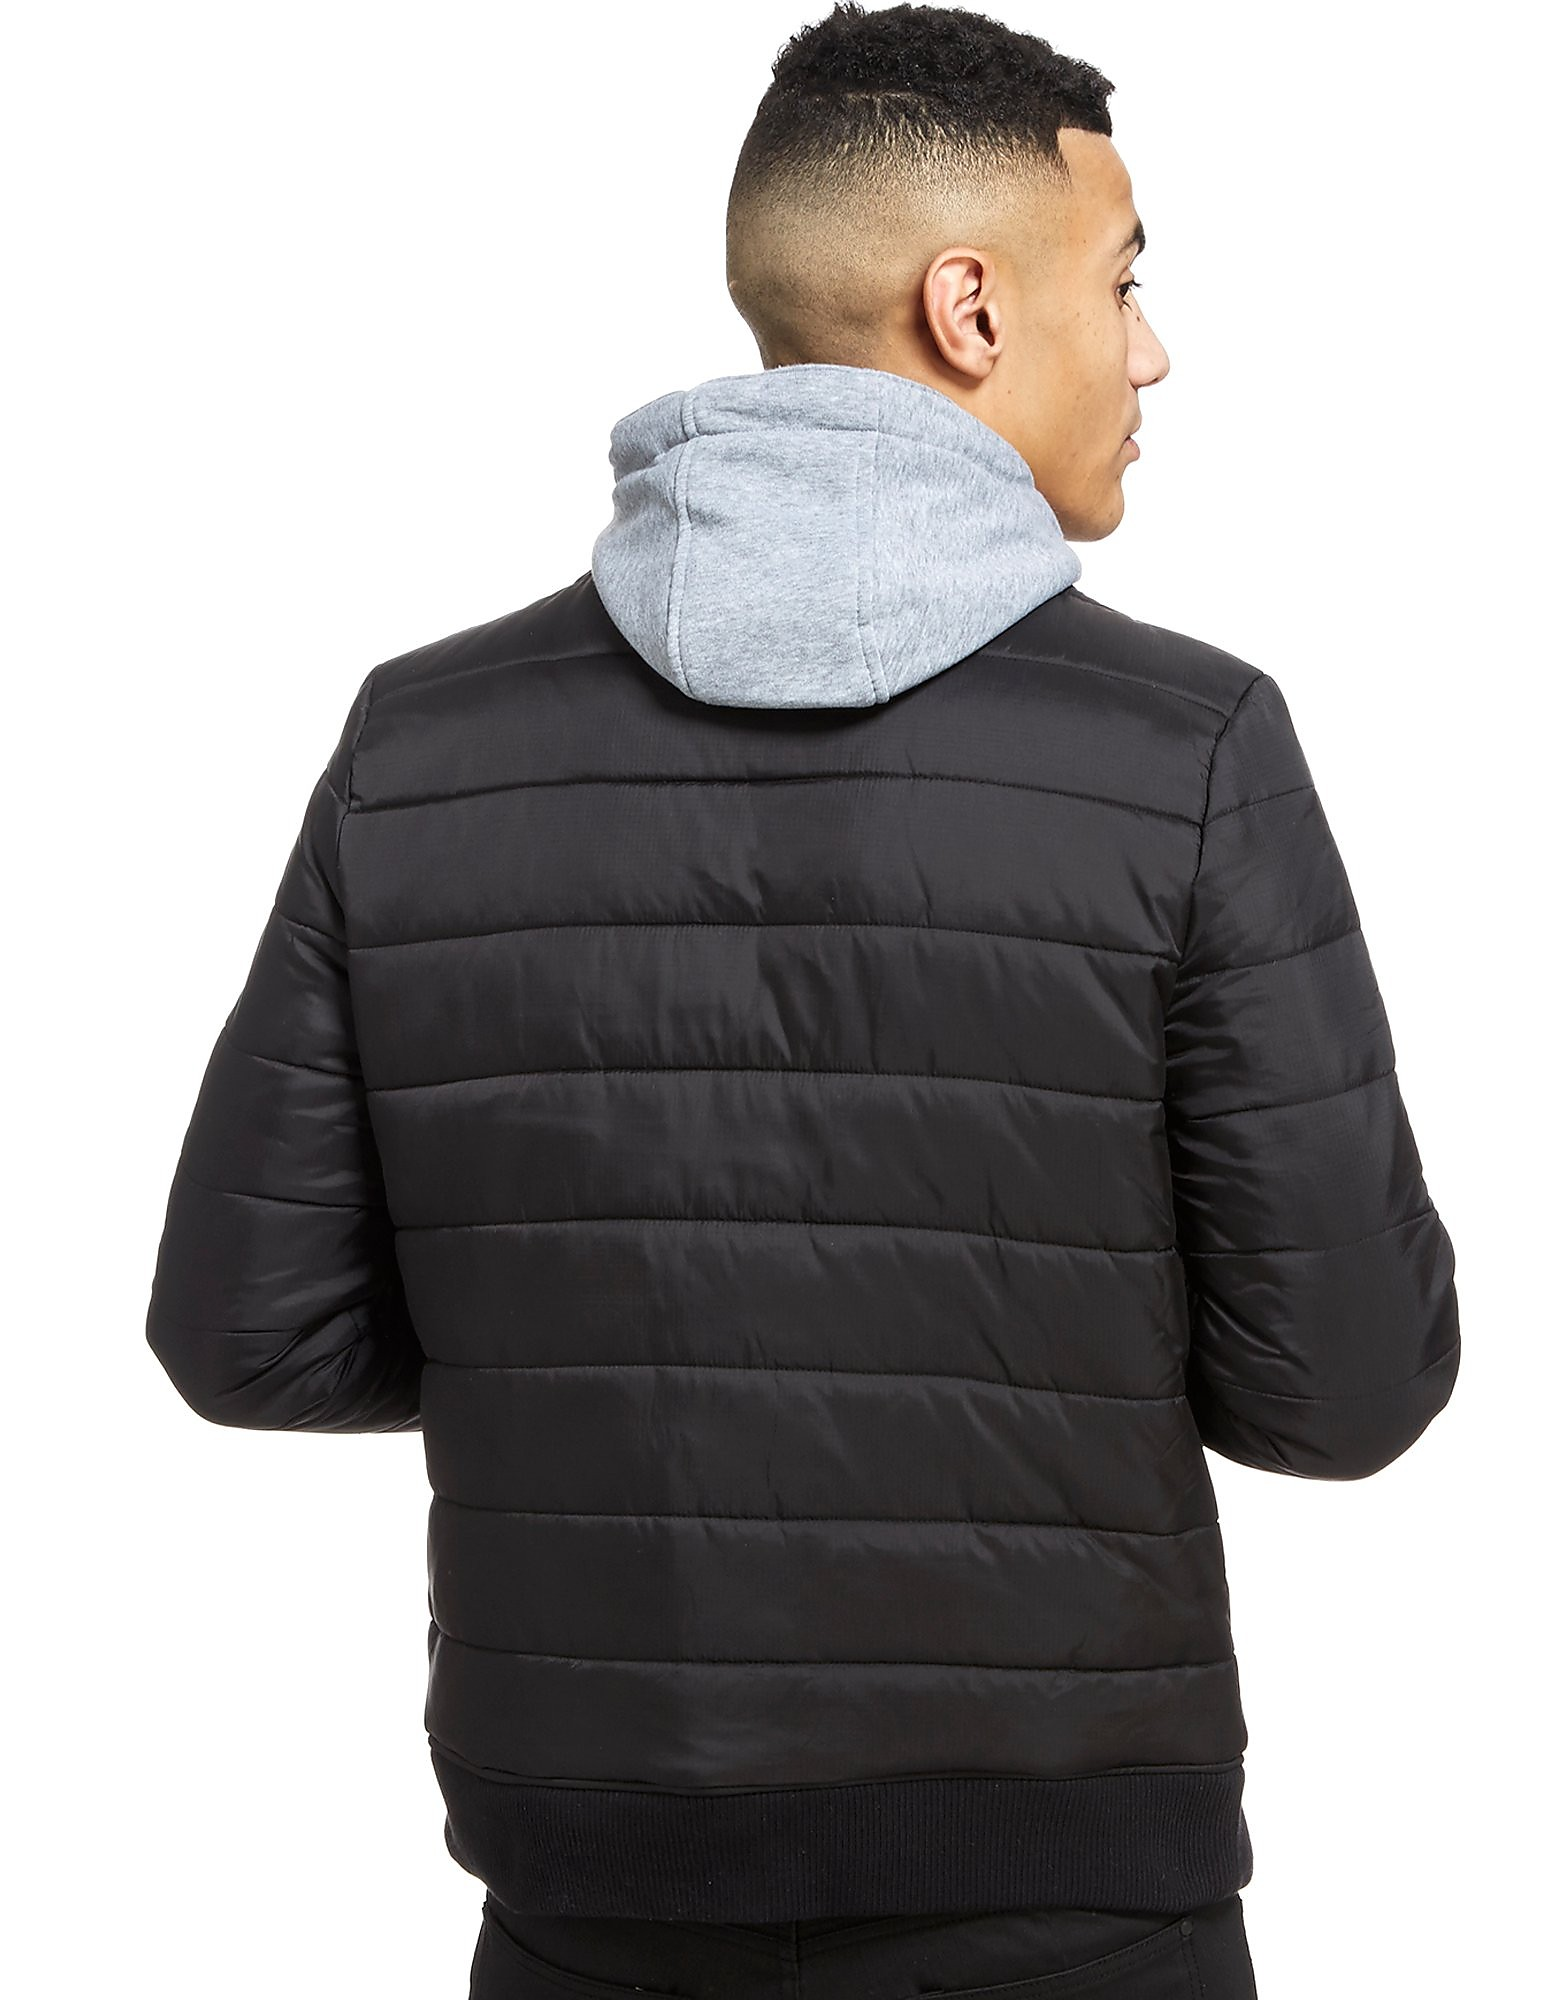 Supply & Demand Colt Jacket